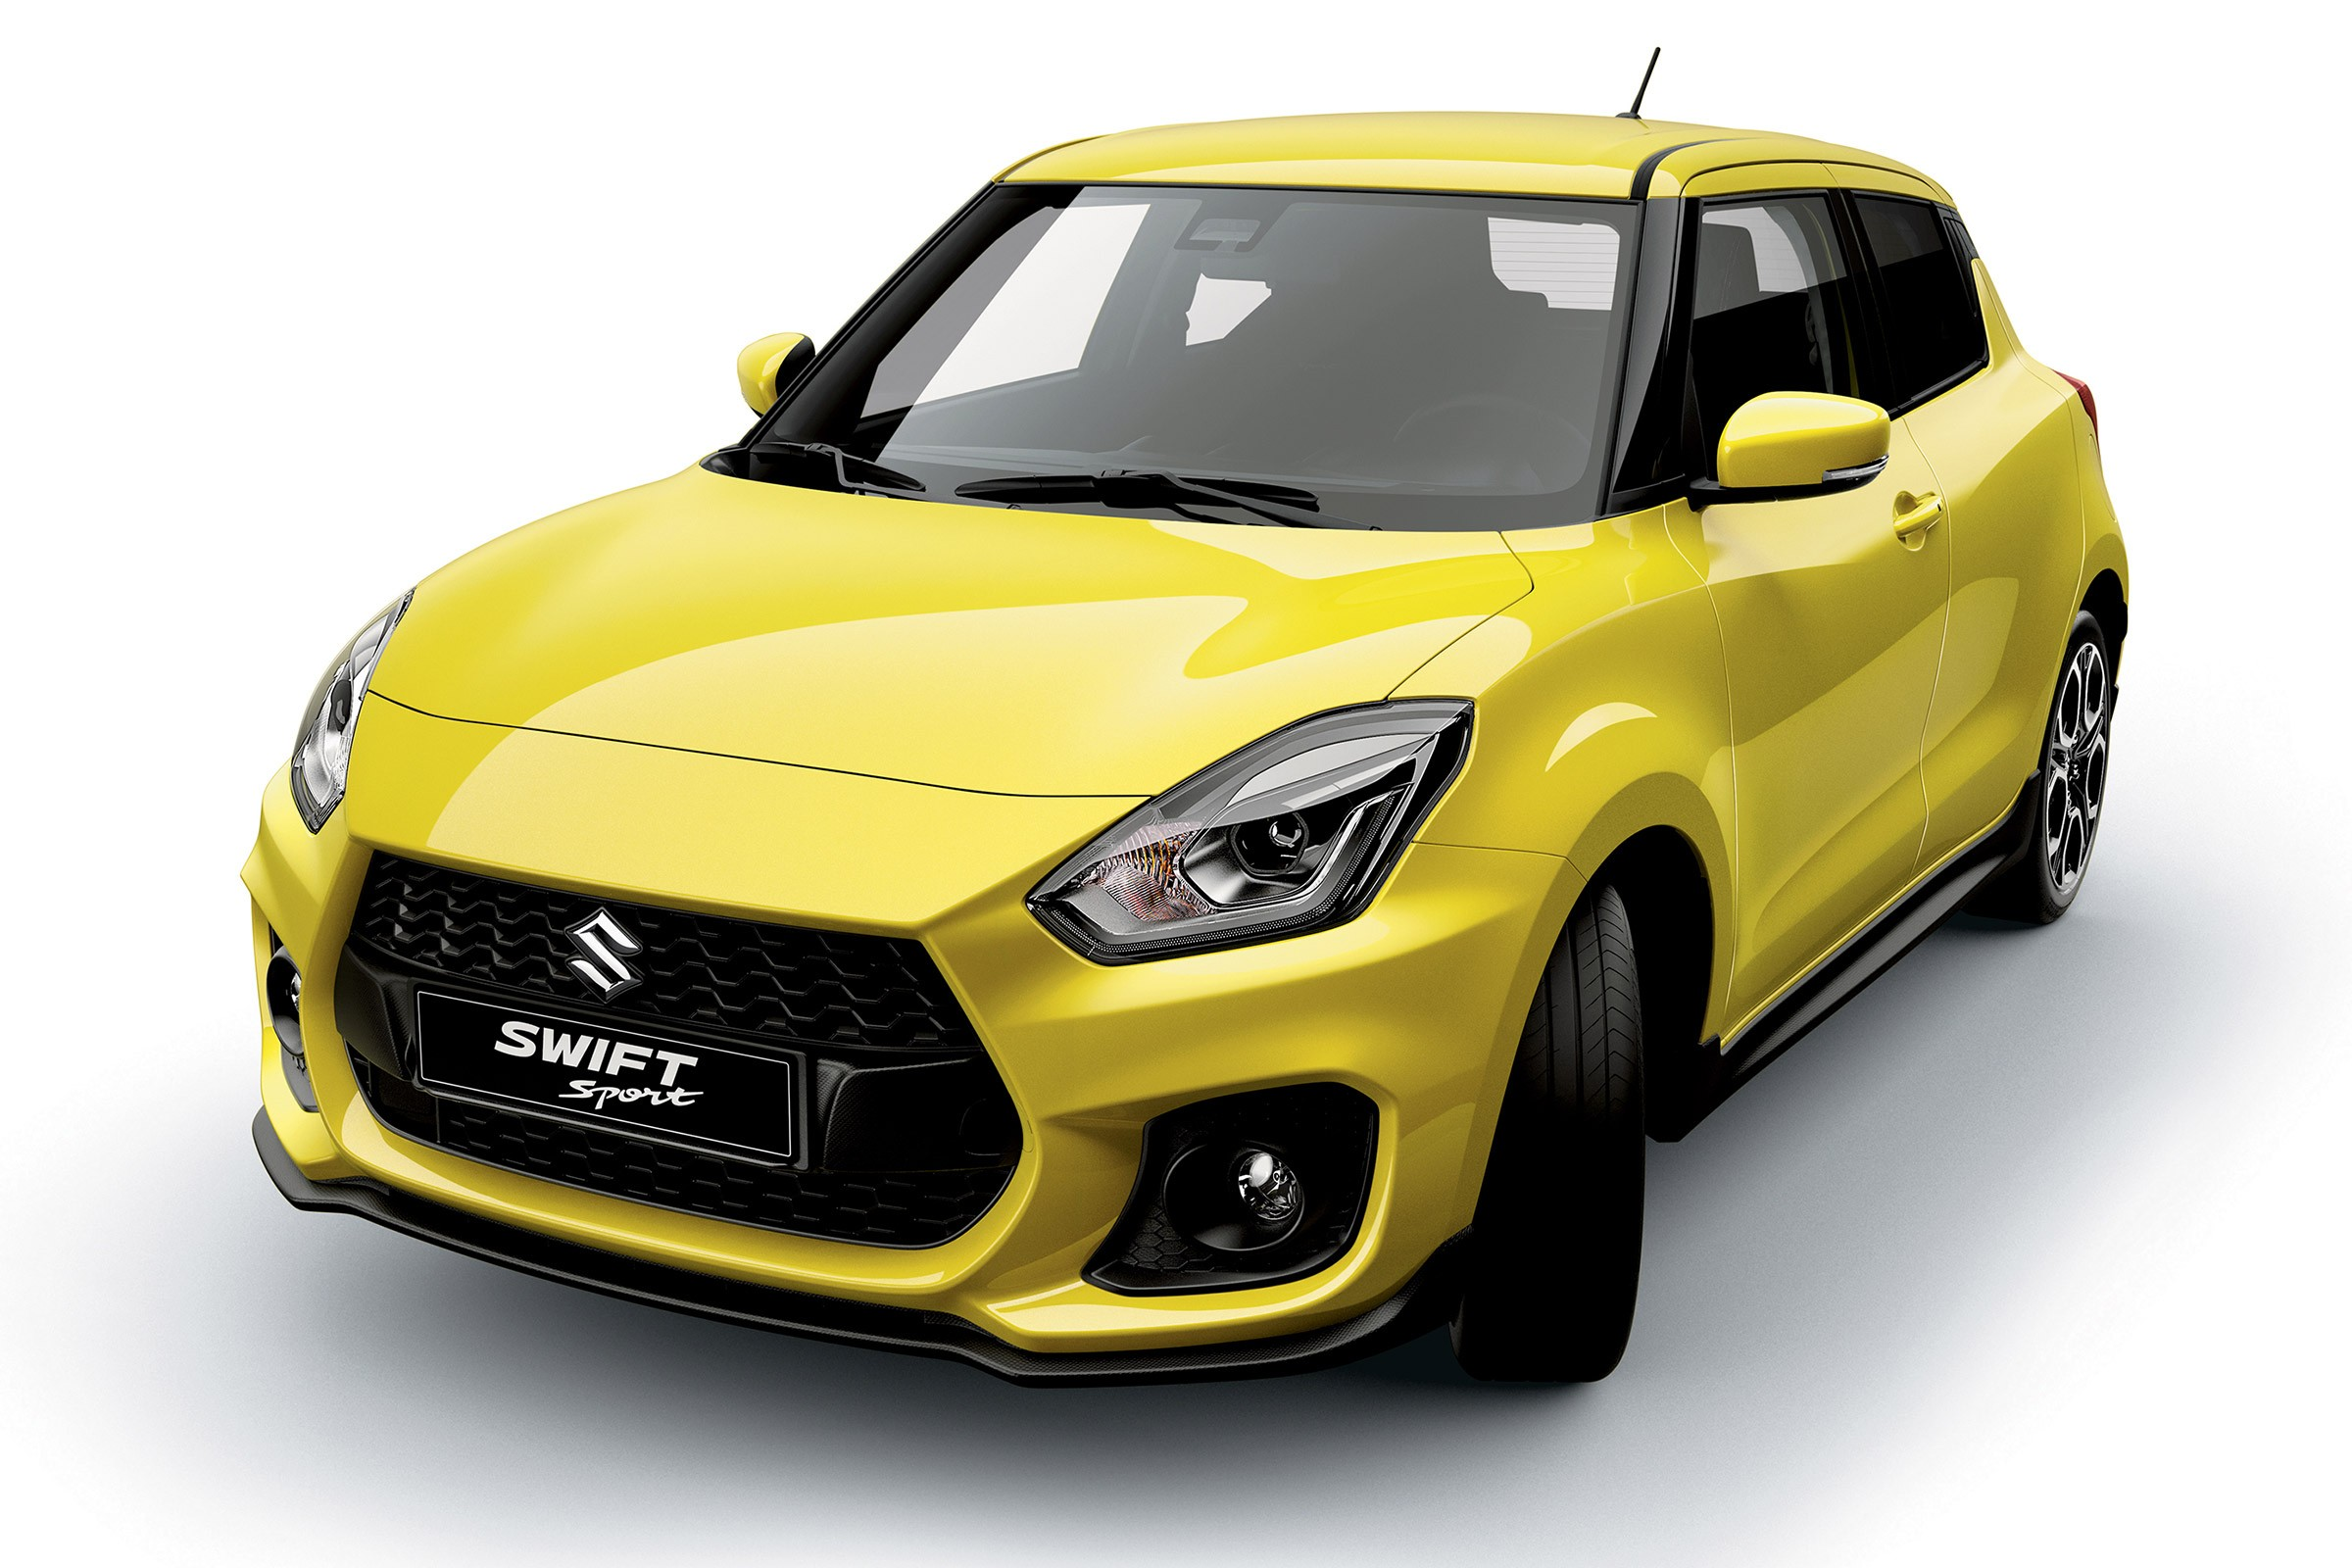 2018 Suzuki Swift Sport Previewed Ahead Of Frankfurt Motor